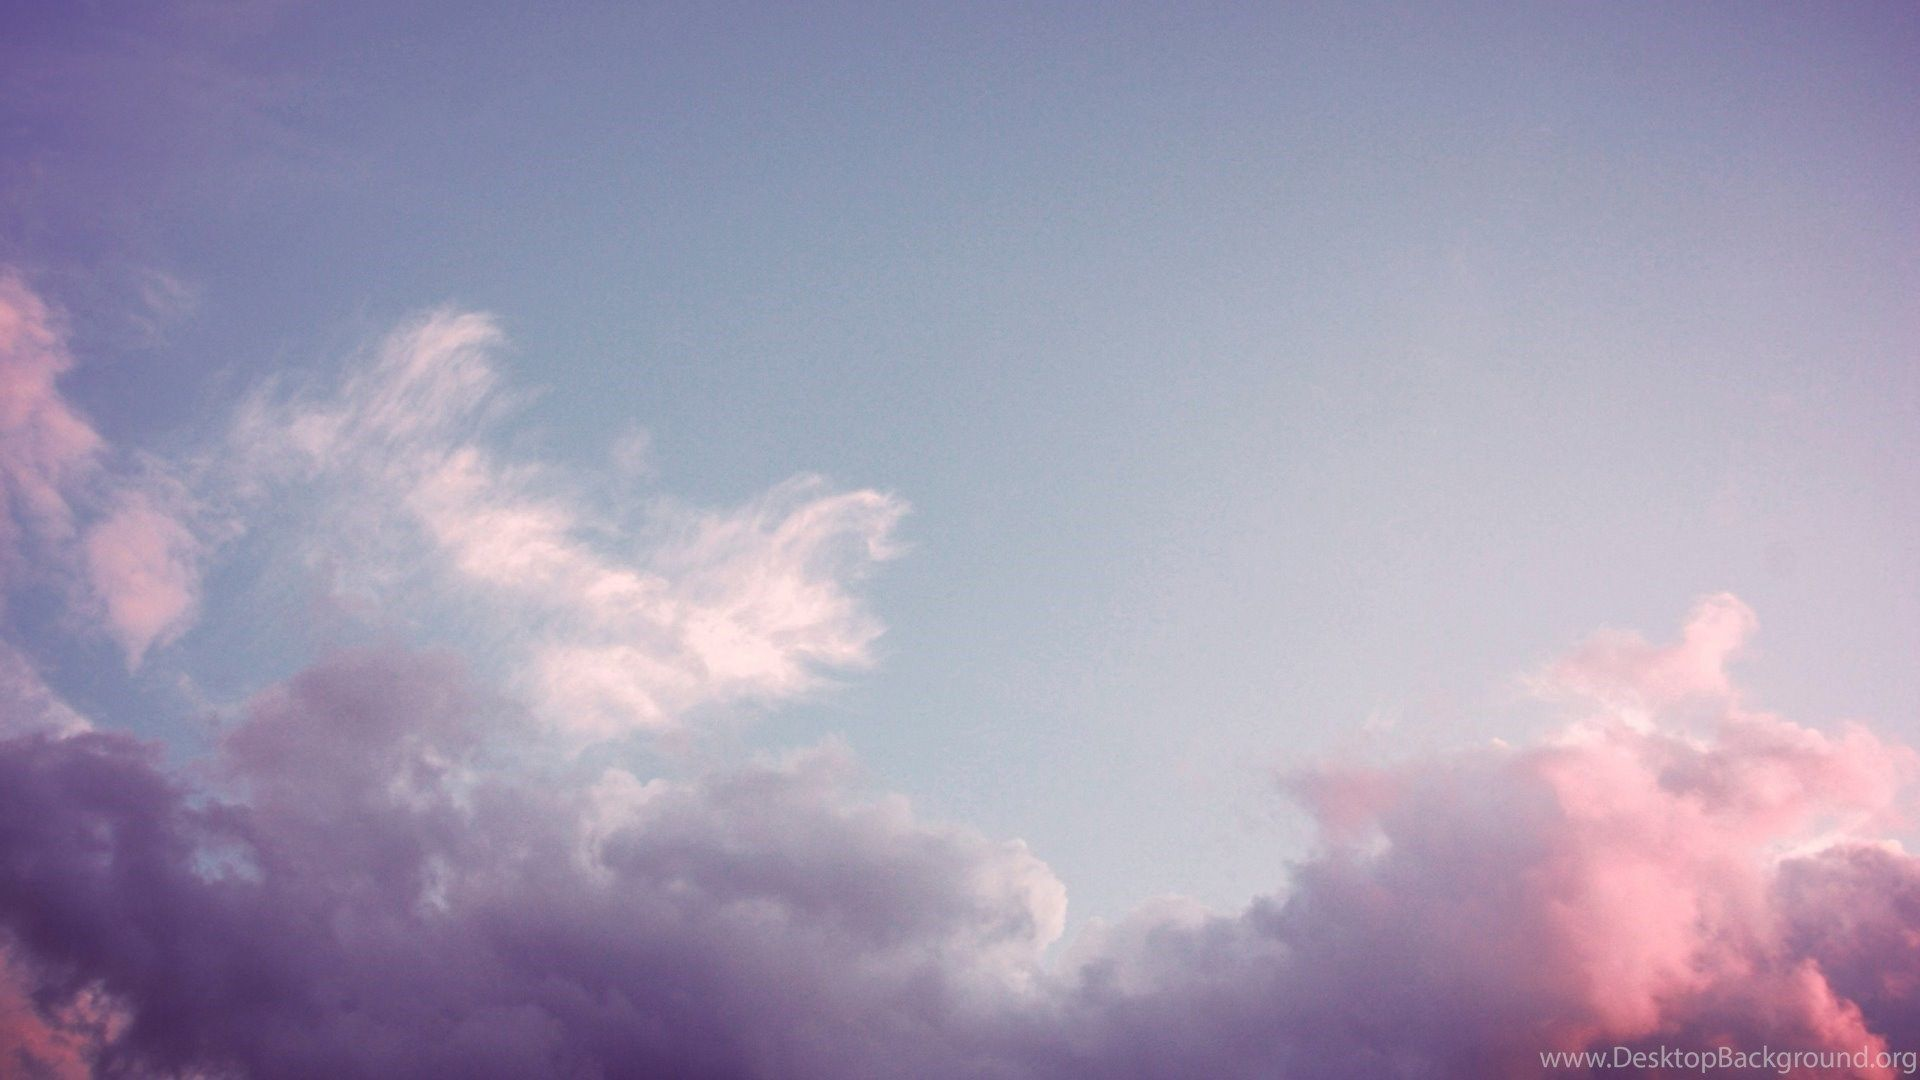 Tumblr Backgrounds Sky Posted By Ethan Simpson